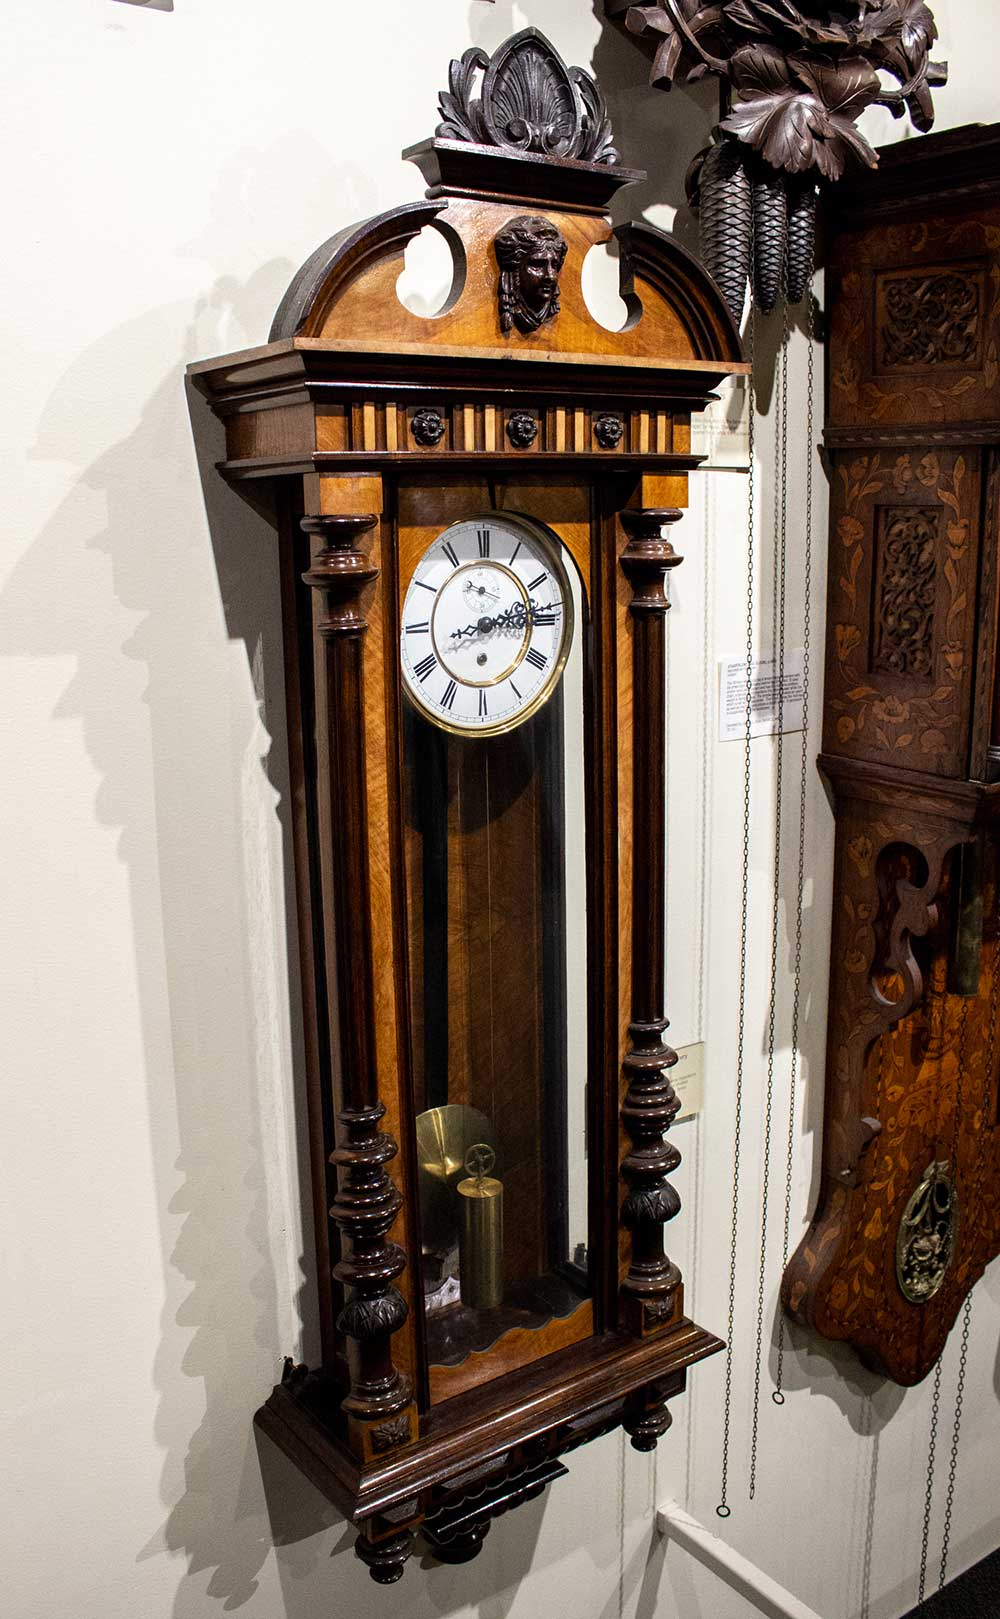 Late 19th-century Vienna regulator clock